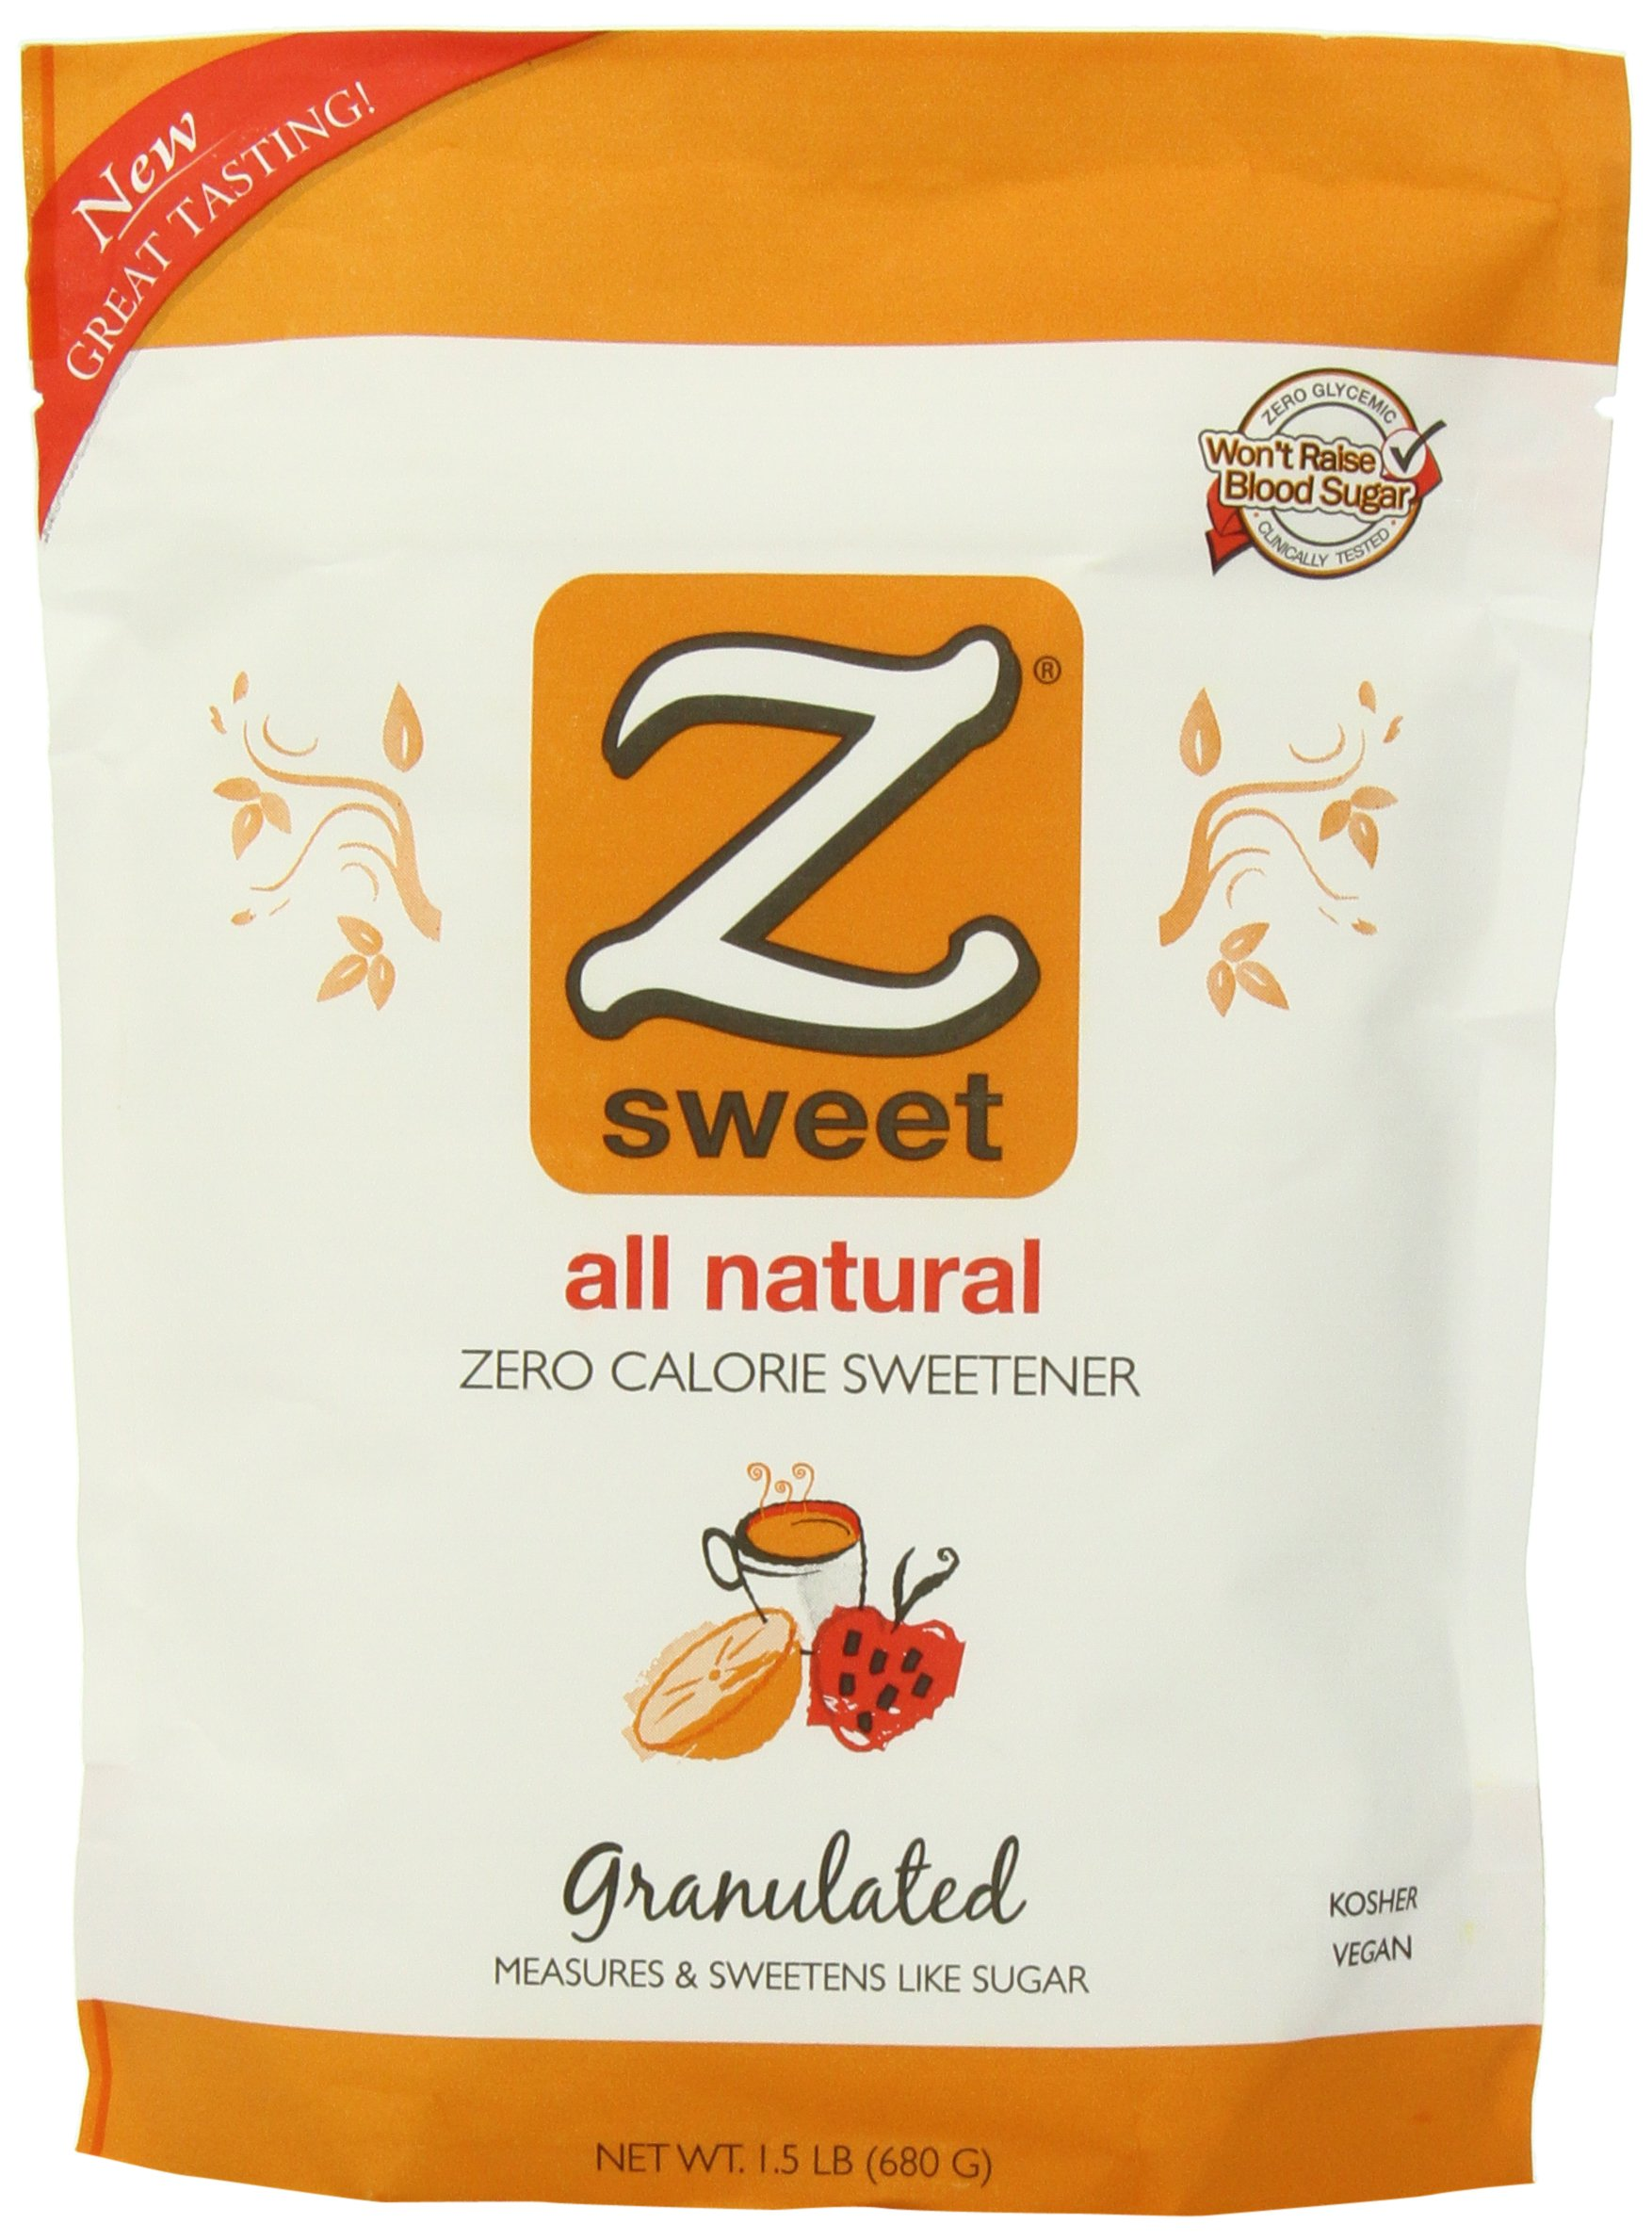 Zsweet All Natural Zero Calorie Sweetener, 1.5-Pound Pouches (Pack of 2) by Zsweet